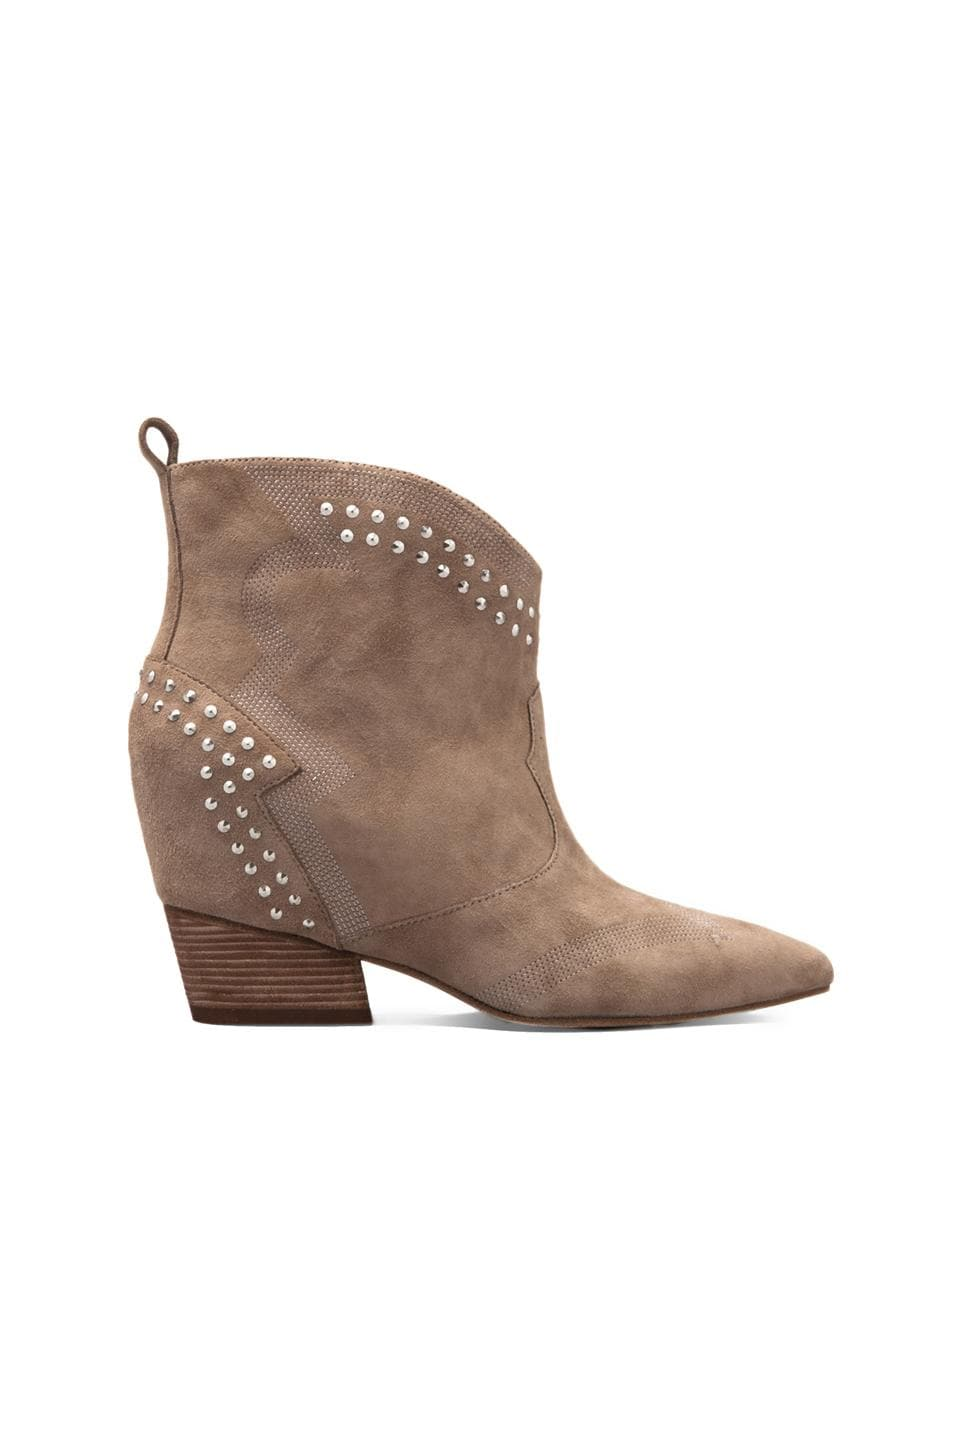 Sigerson Morrison Accent Hidden Wedge Bootie in Stone